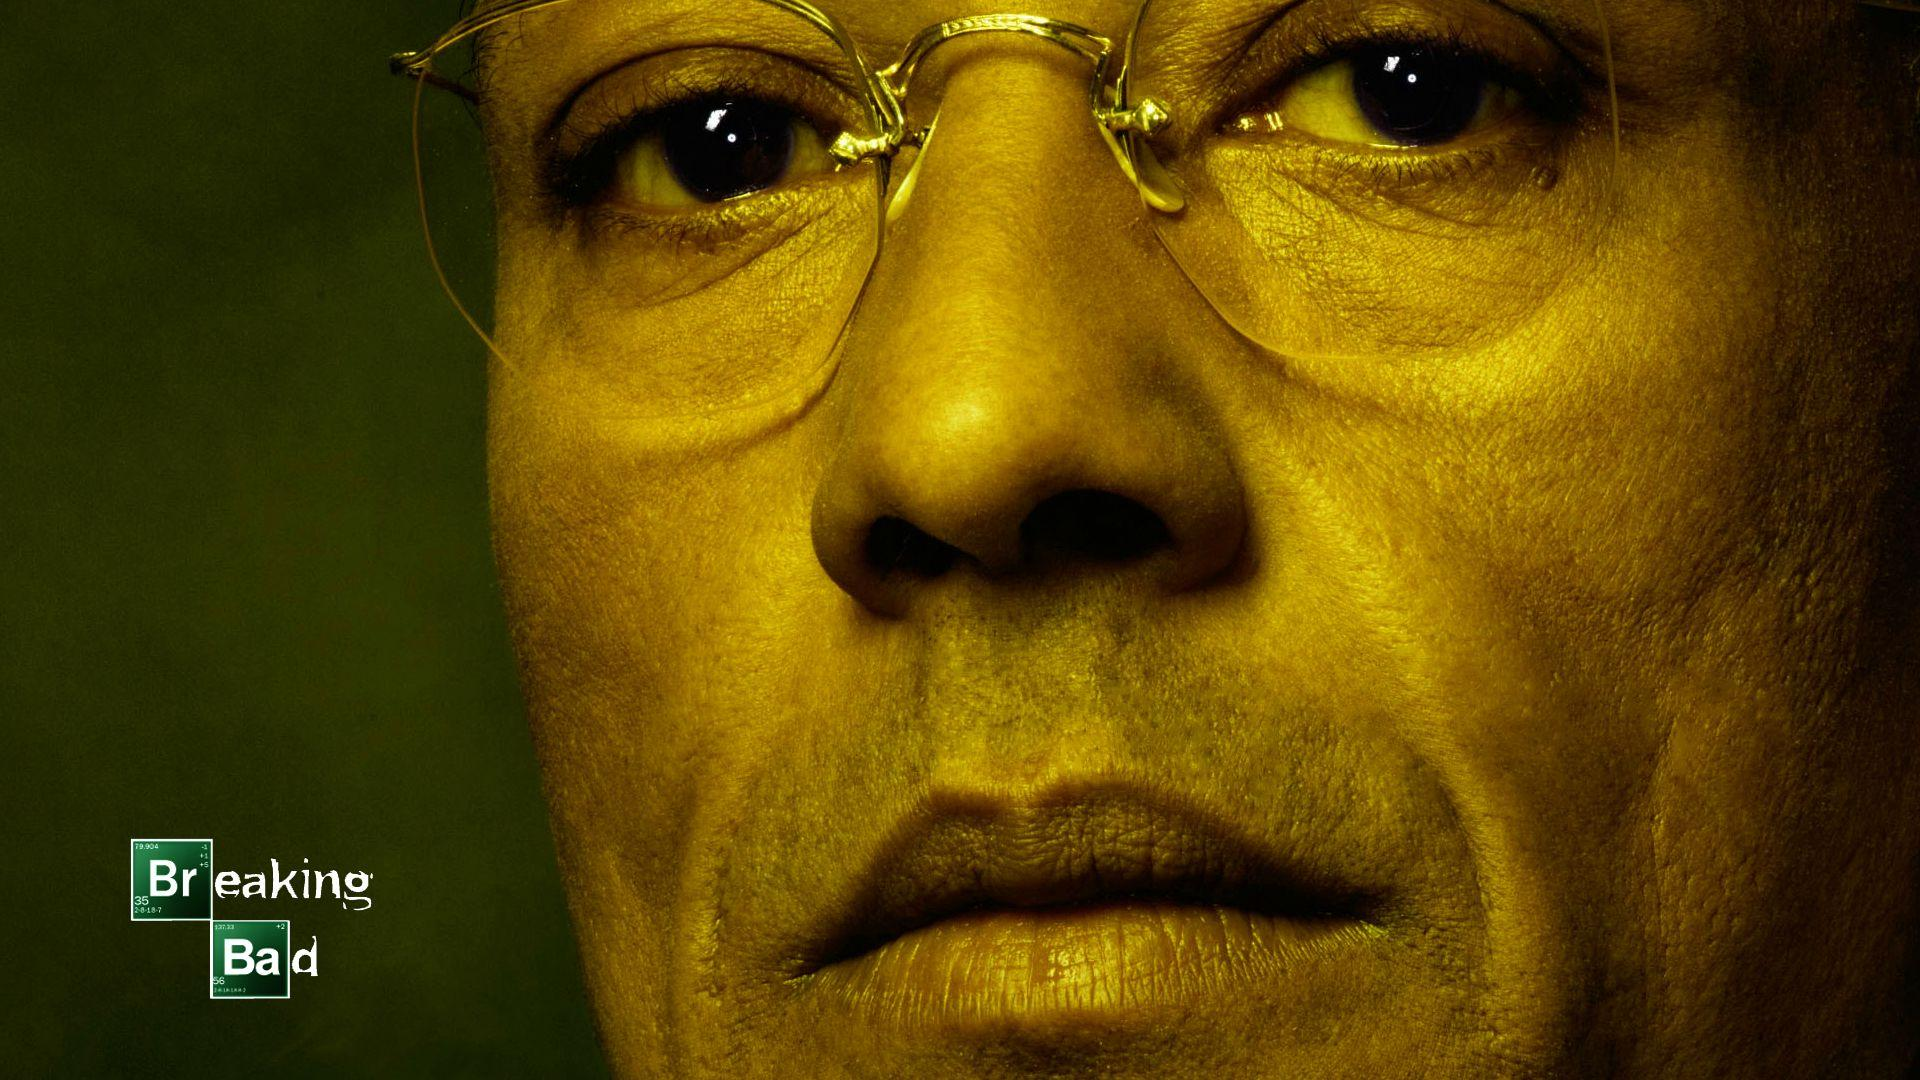 Gus Fring Wallpapers Top Free Gus Fring Backgrounds Wallpaperaccess